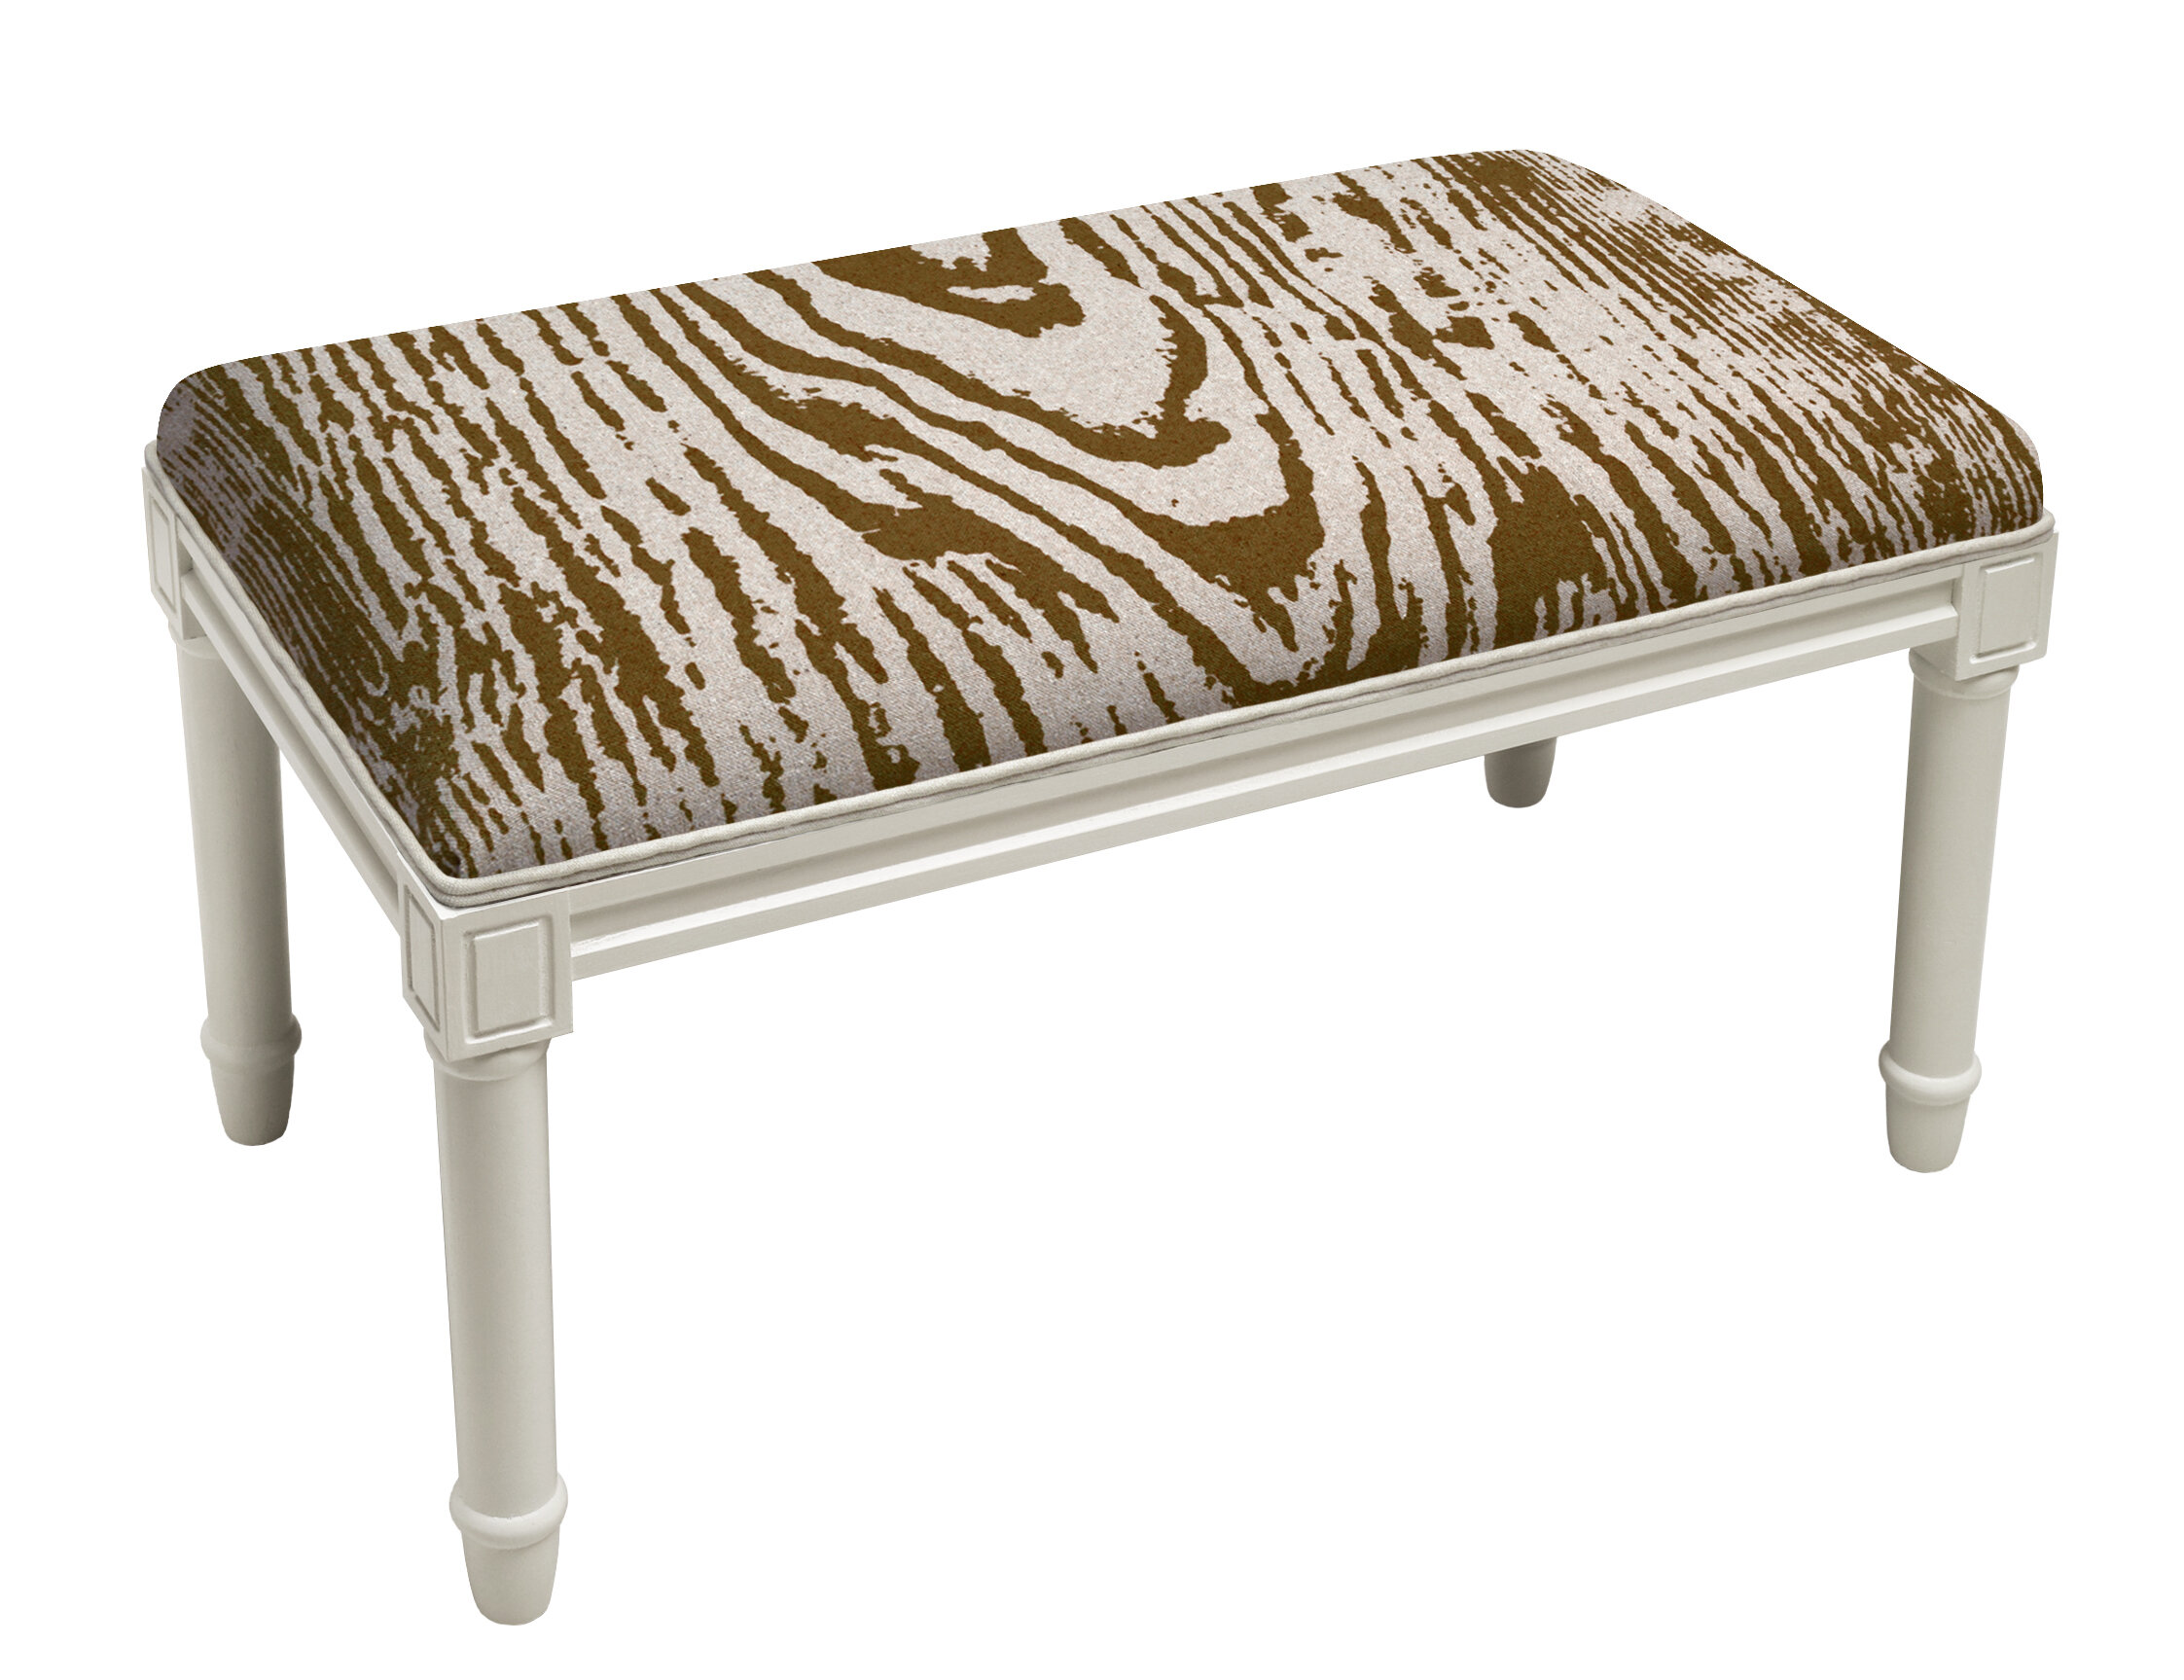 Bloomsbury Market Poirier Faux Bois Wood Bench | Wayfair